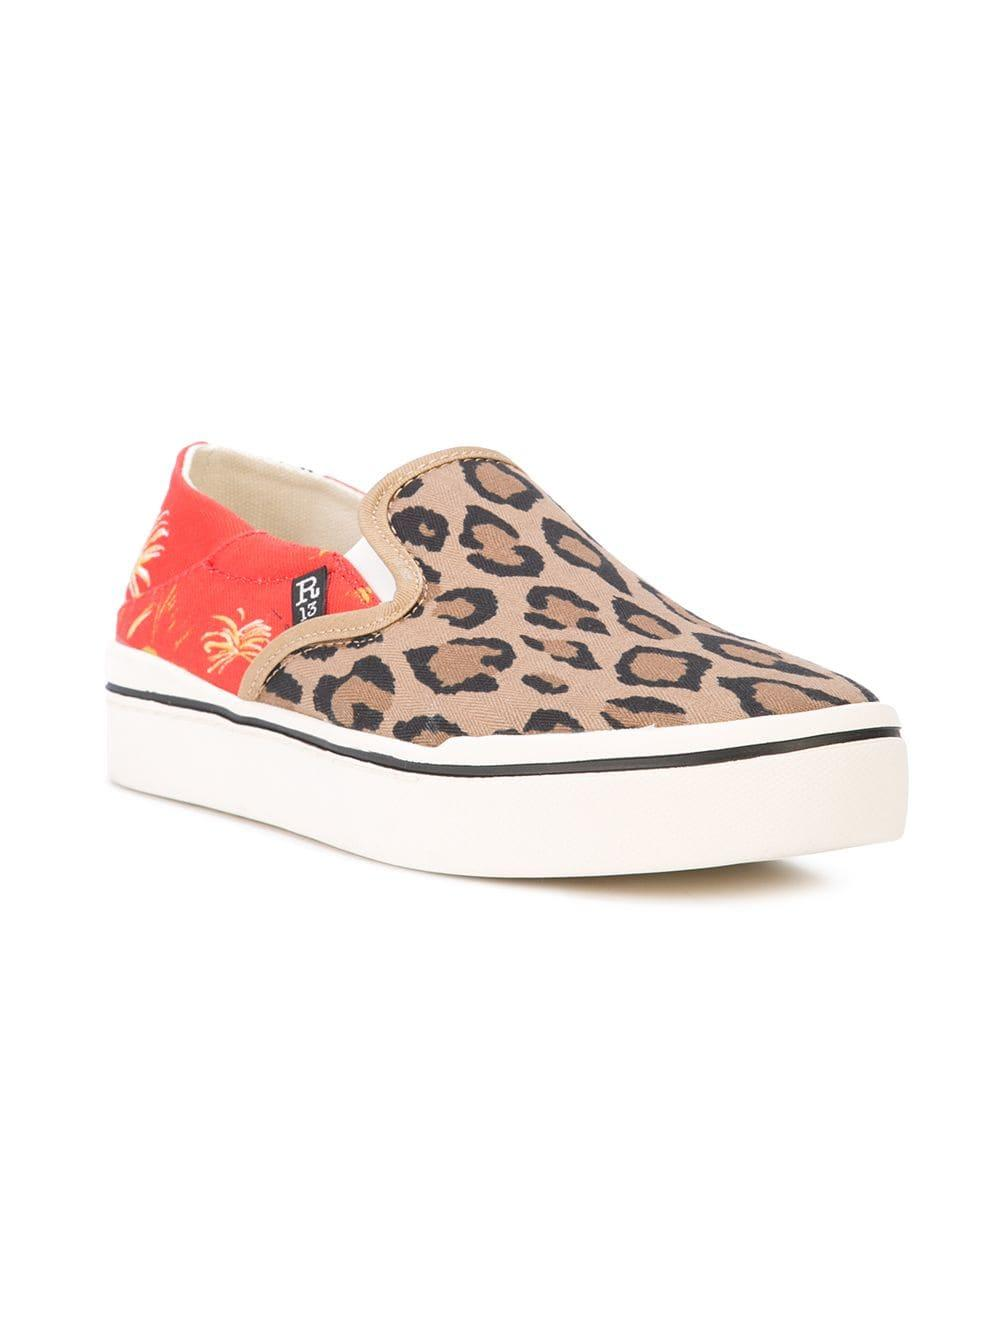 d5037a9ae57a R13 Leopard Print Sneakers in Red - Save 21% - Lyst